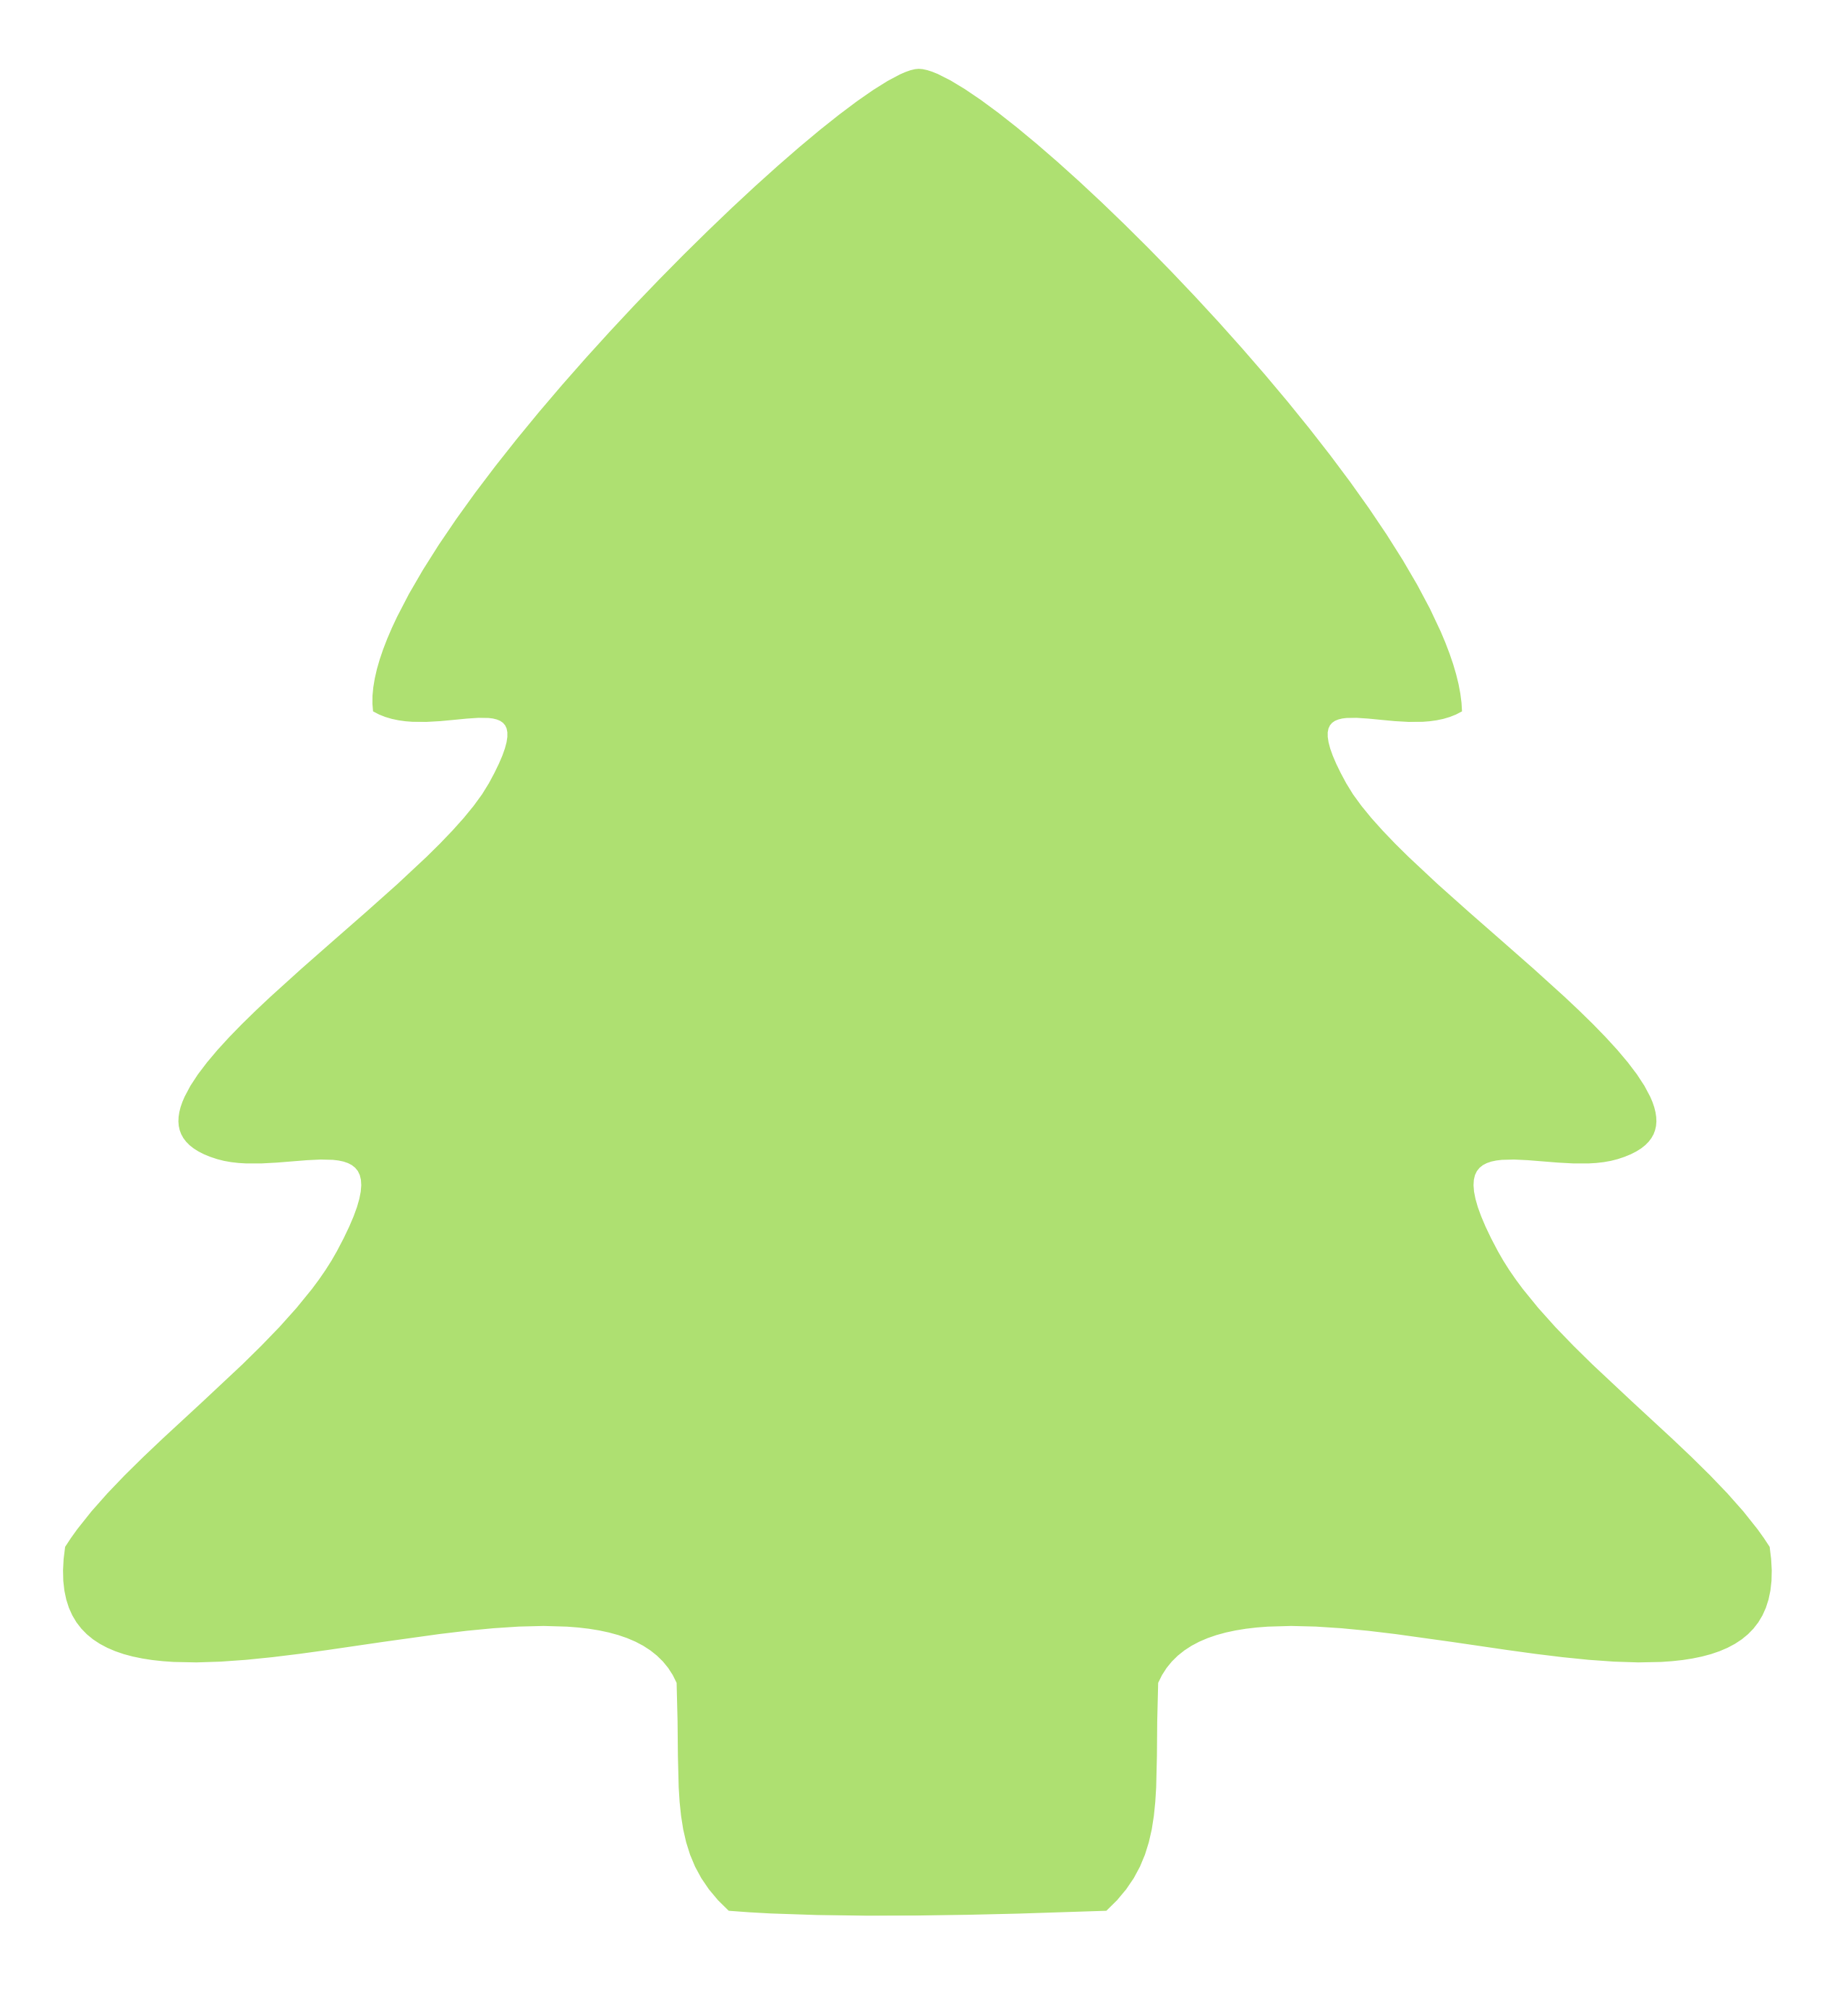 Music note clipart christmas tree. Death of a salesman